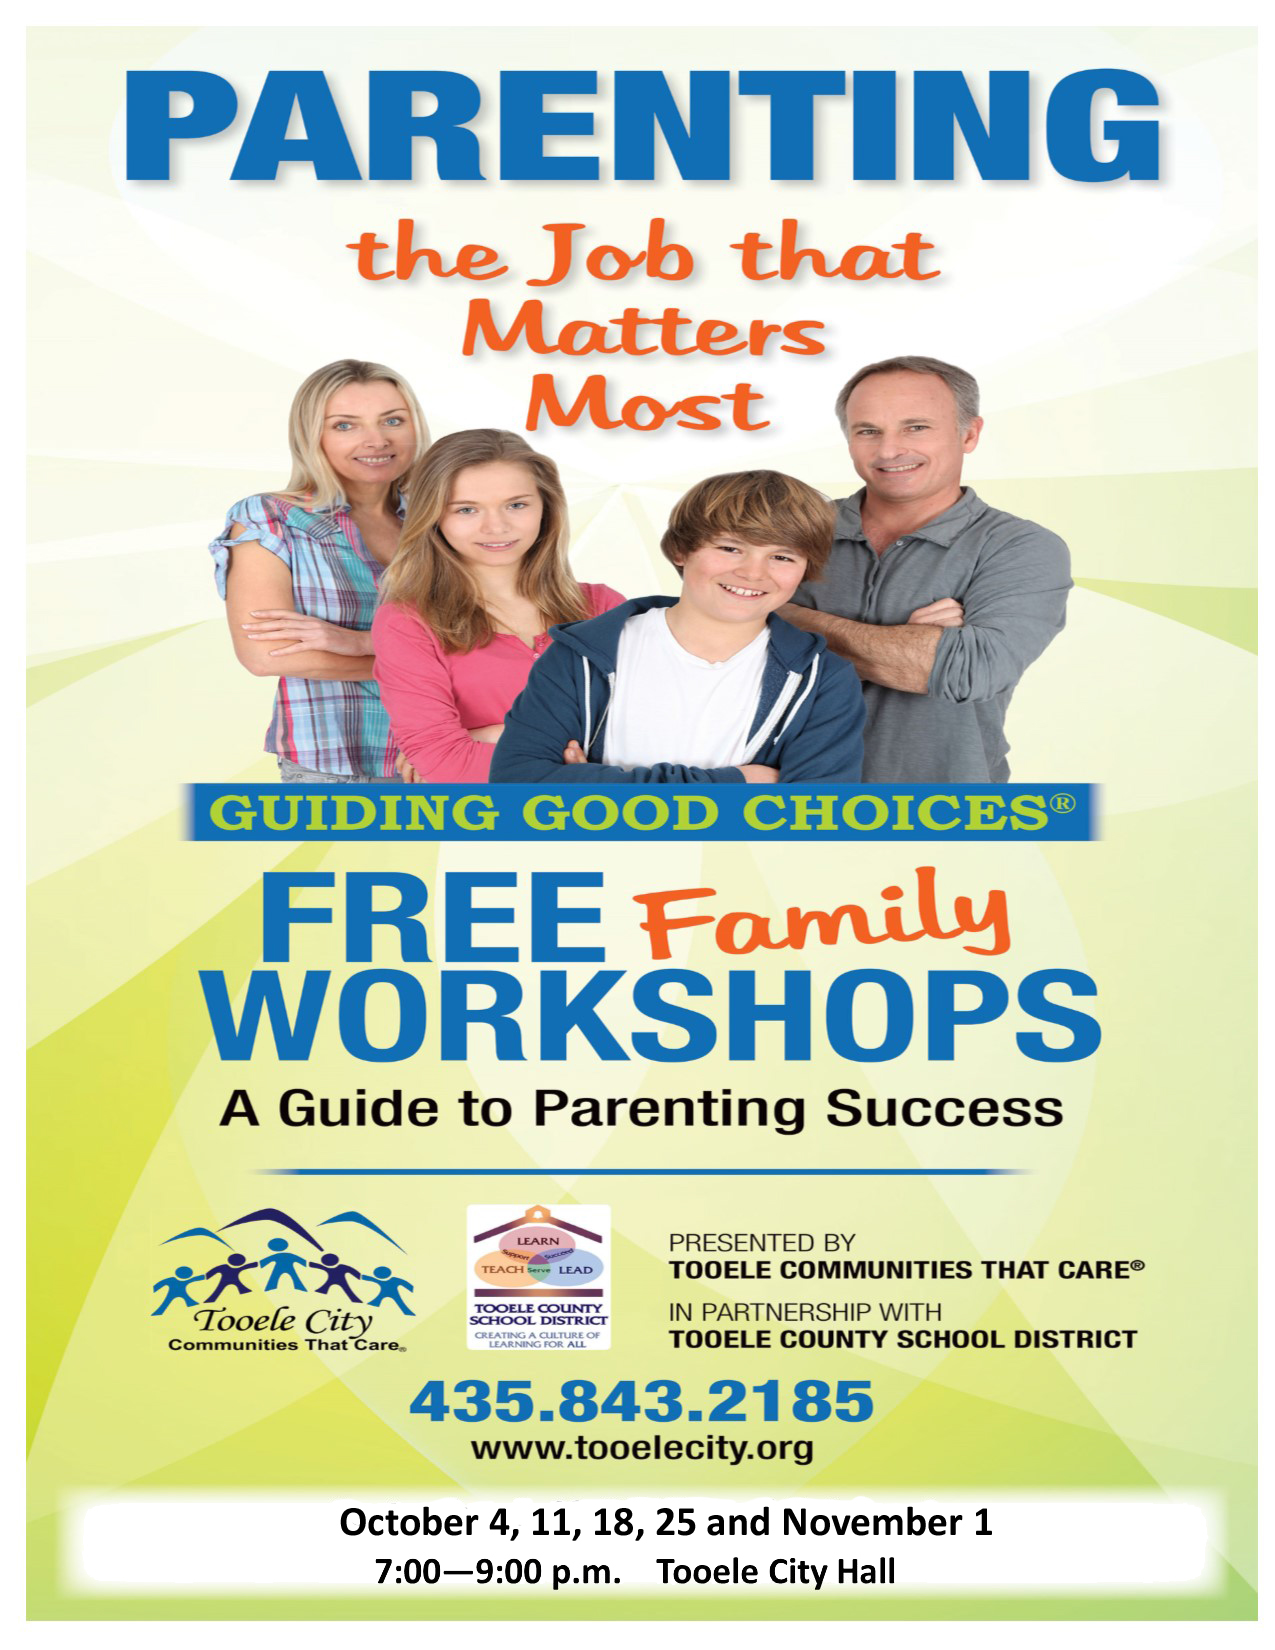 Guiding Good Choices FREE Parenting & Family Workshops (Tuesday Nights) @ Tooele City Hall | Tooele | Utah | United States